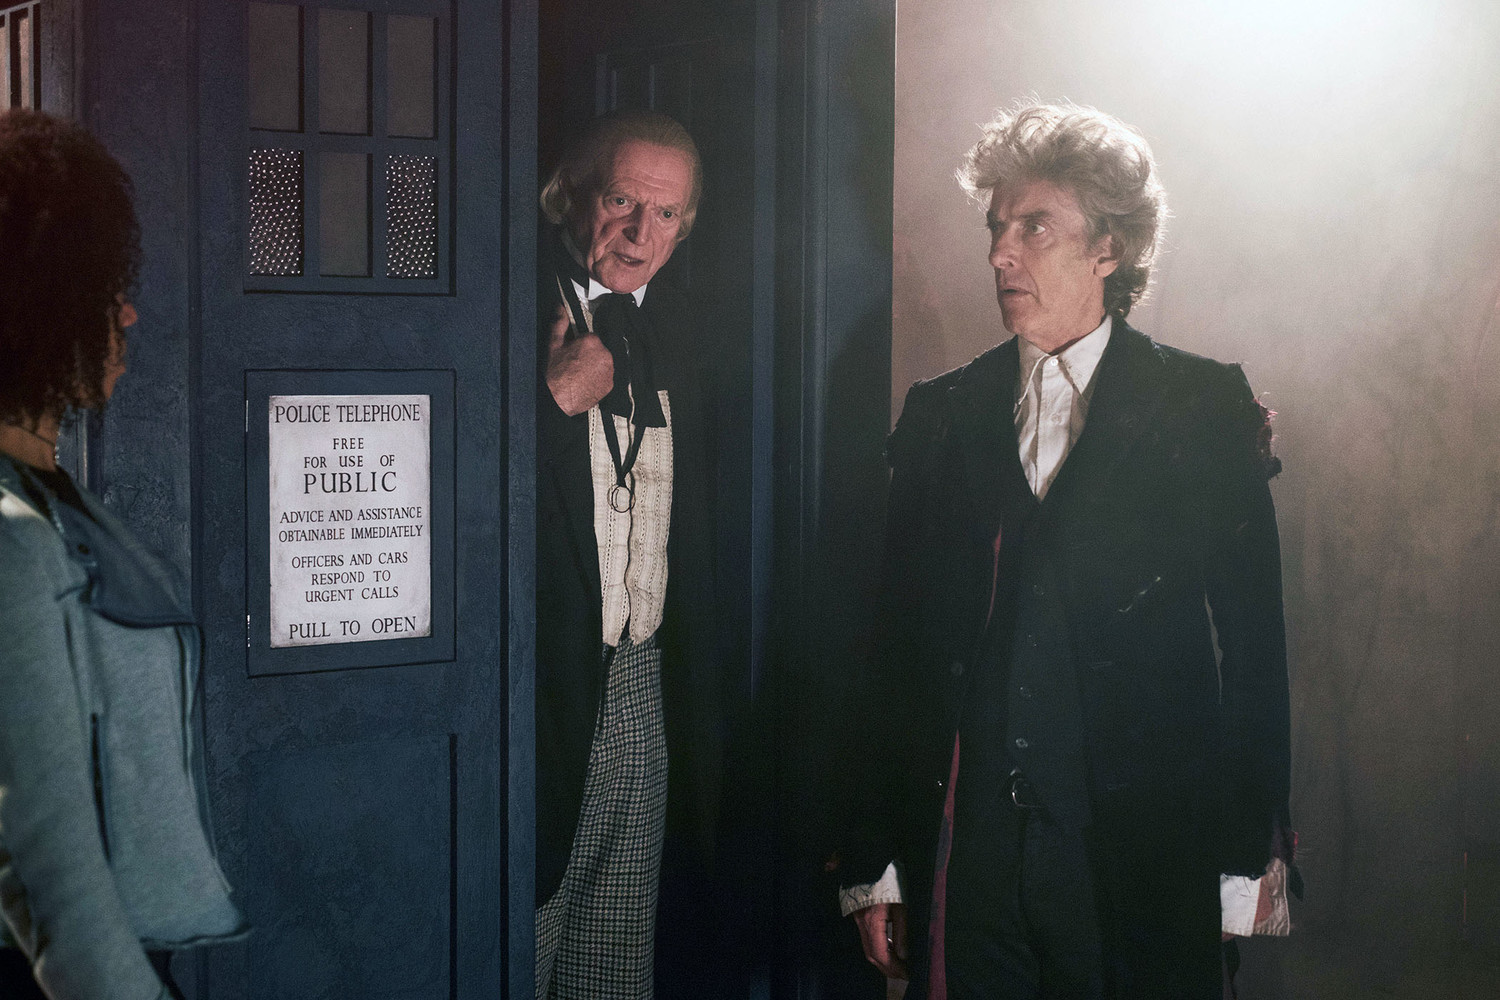 Bill (PEARL MACKIE), The First Doctor (DAVID BRADLEY), The Doctor (PETER CAPALDI)